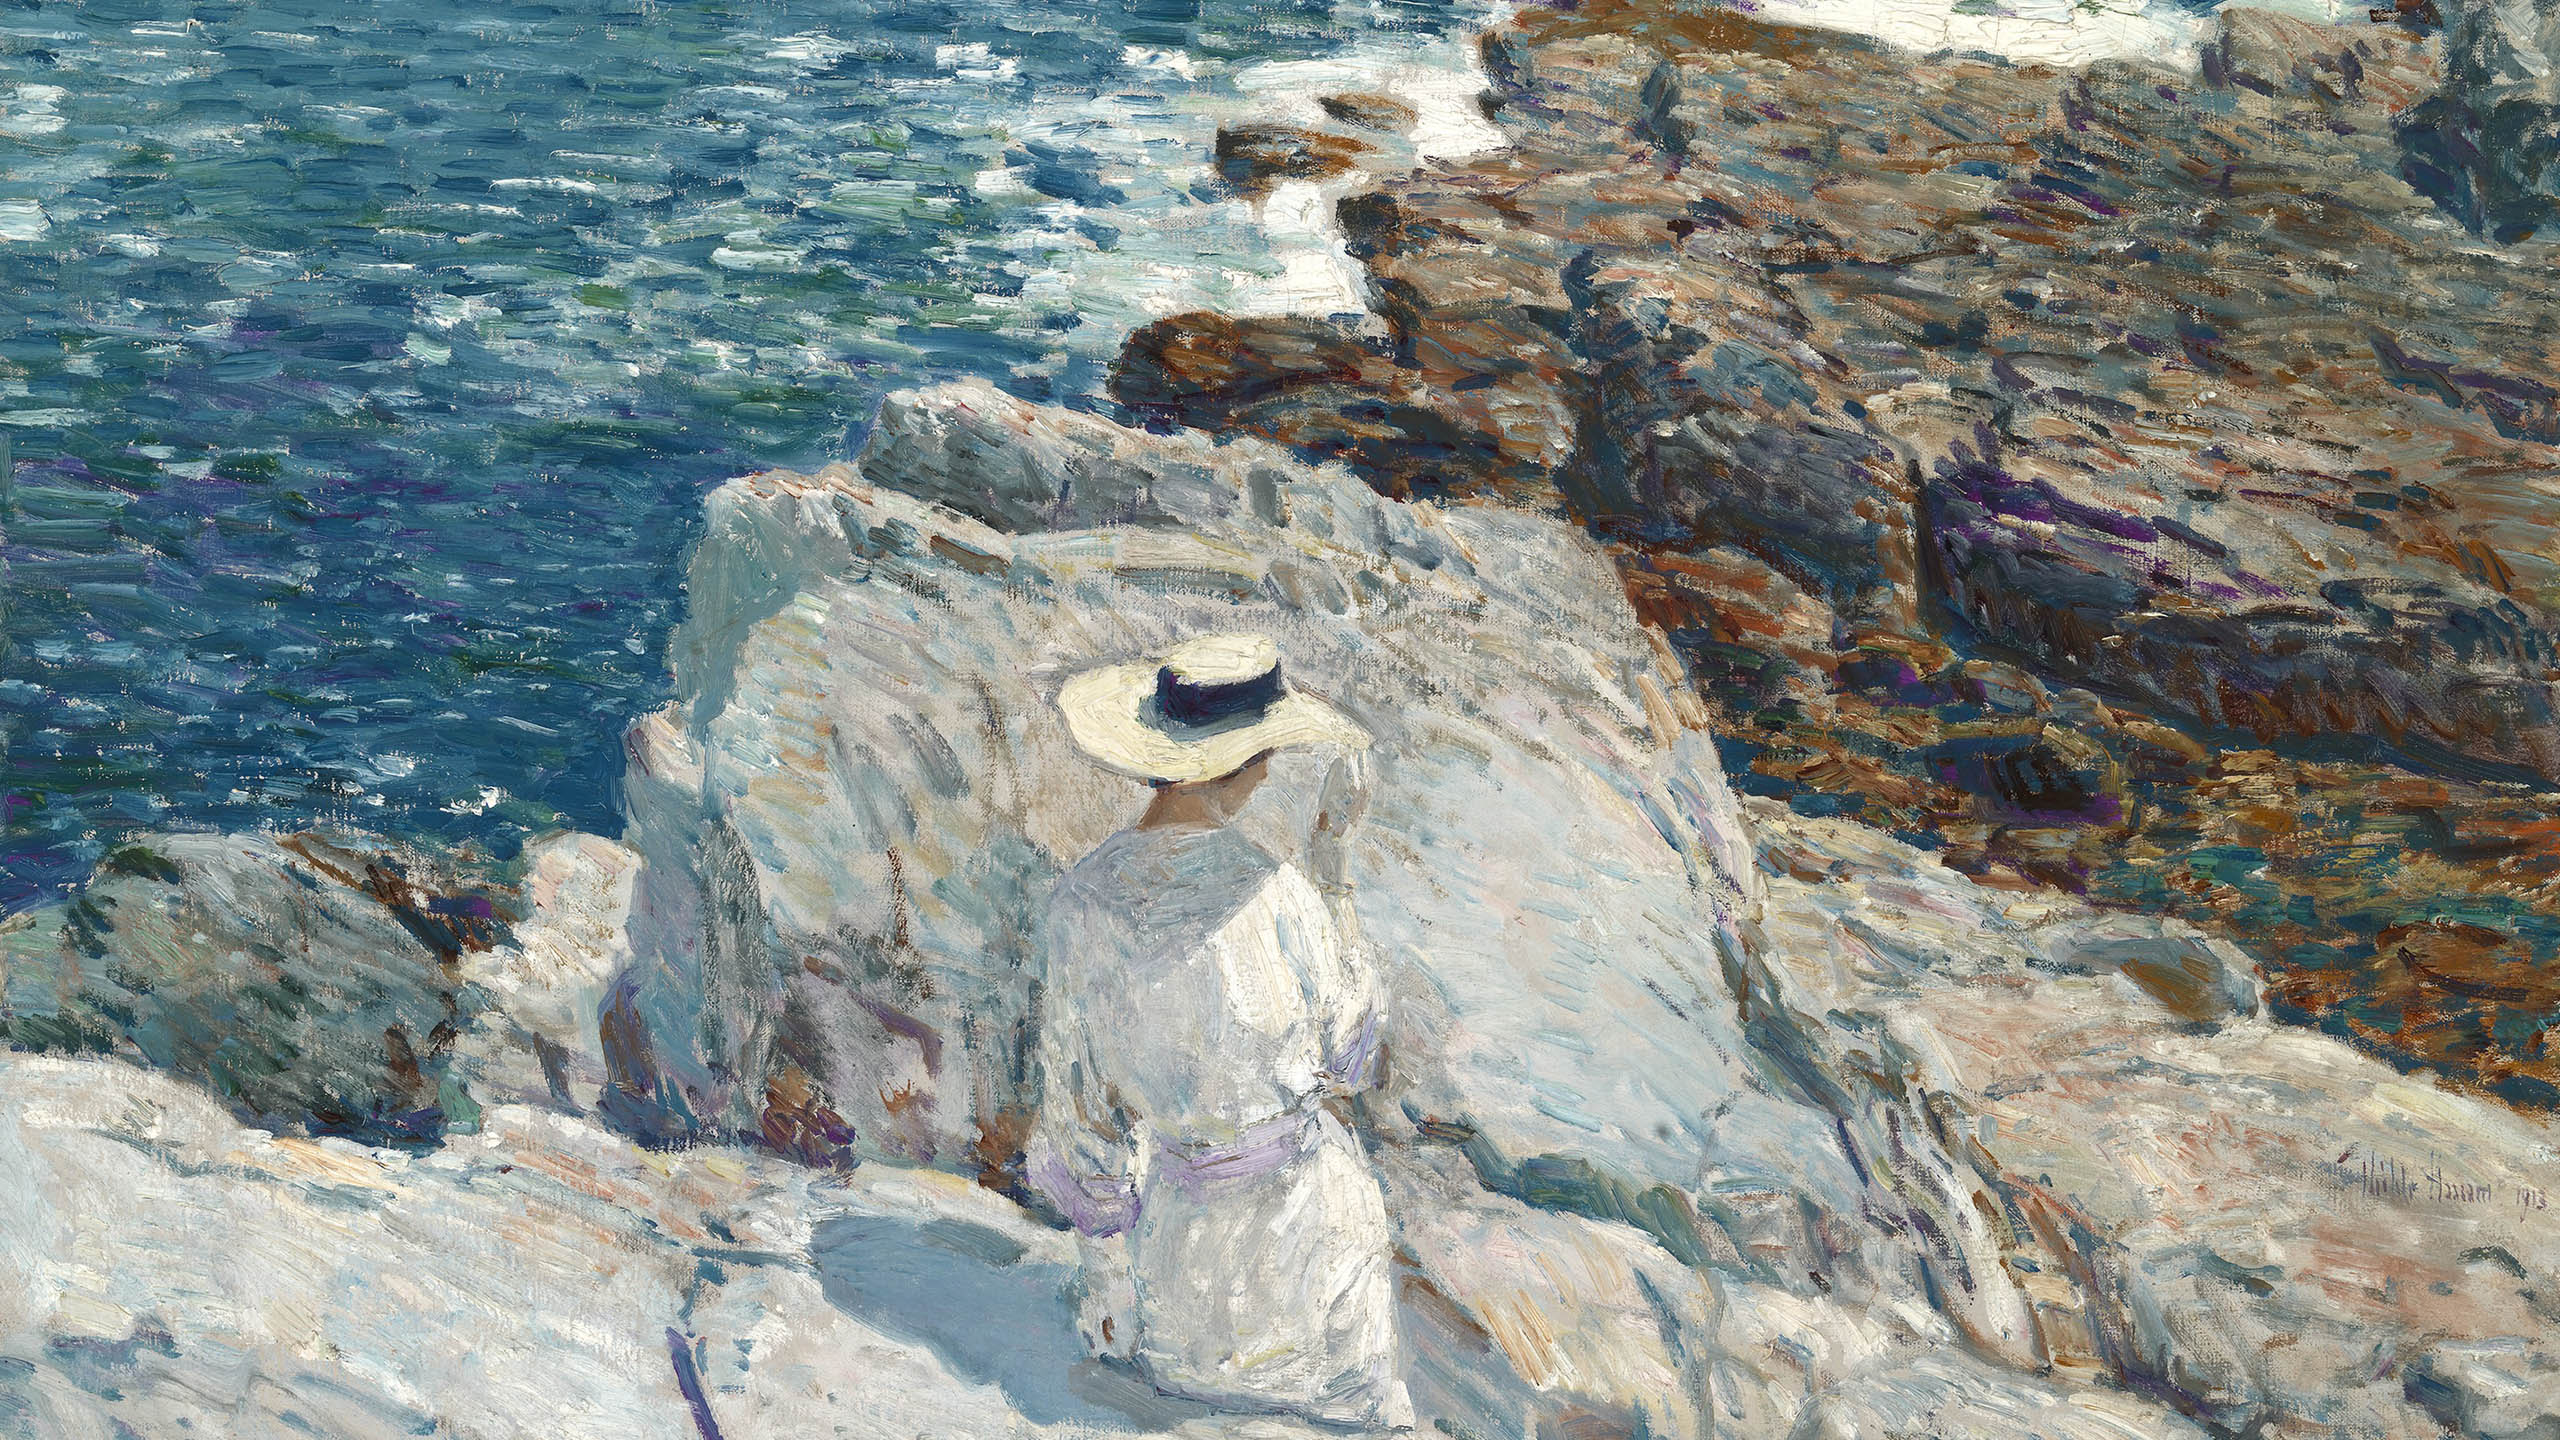 Childe Hassam - The South Ledges, Appledore 2560x1440